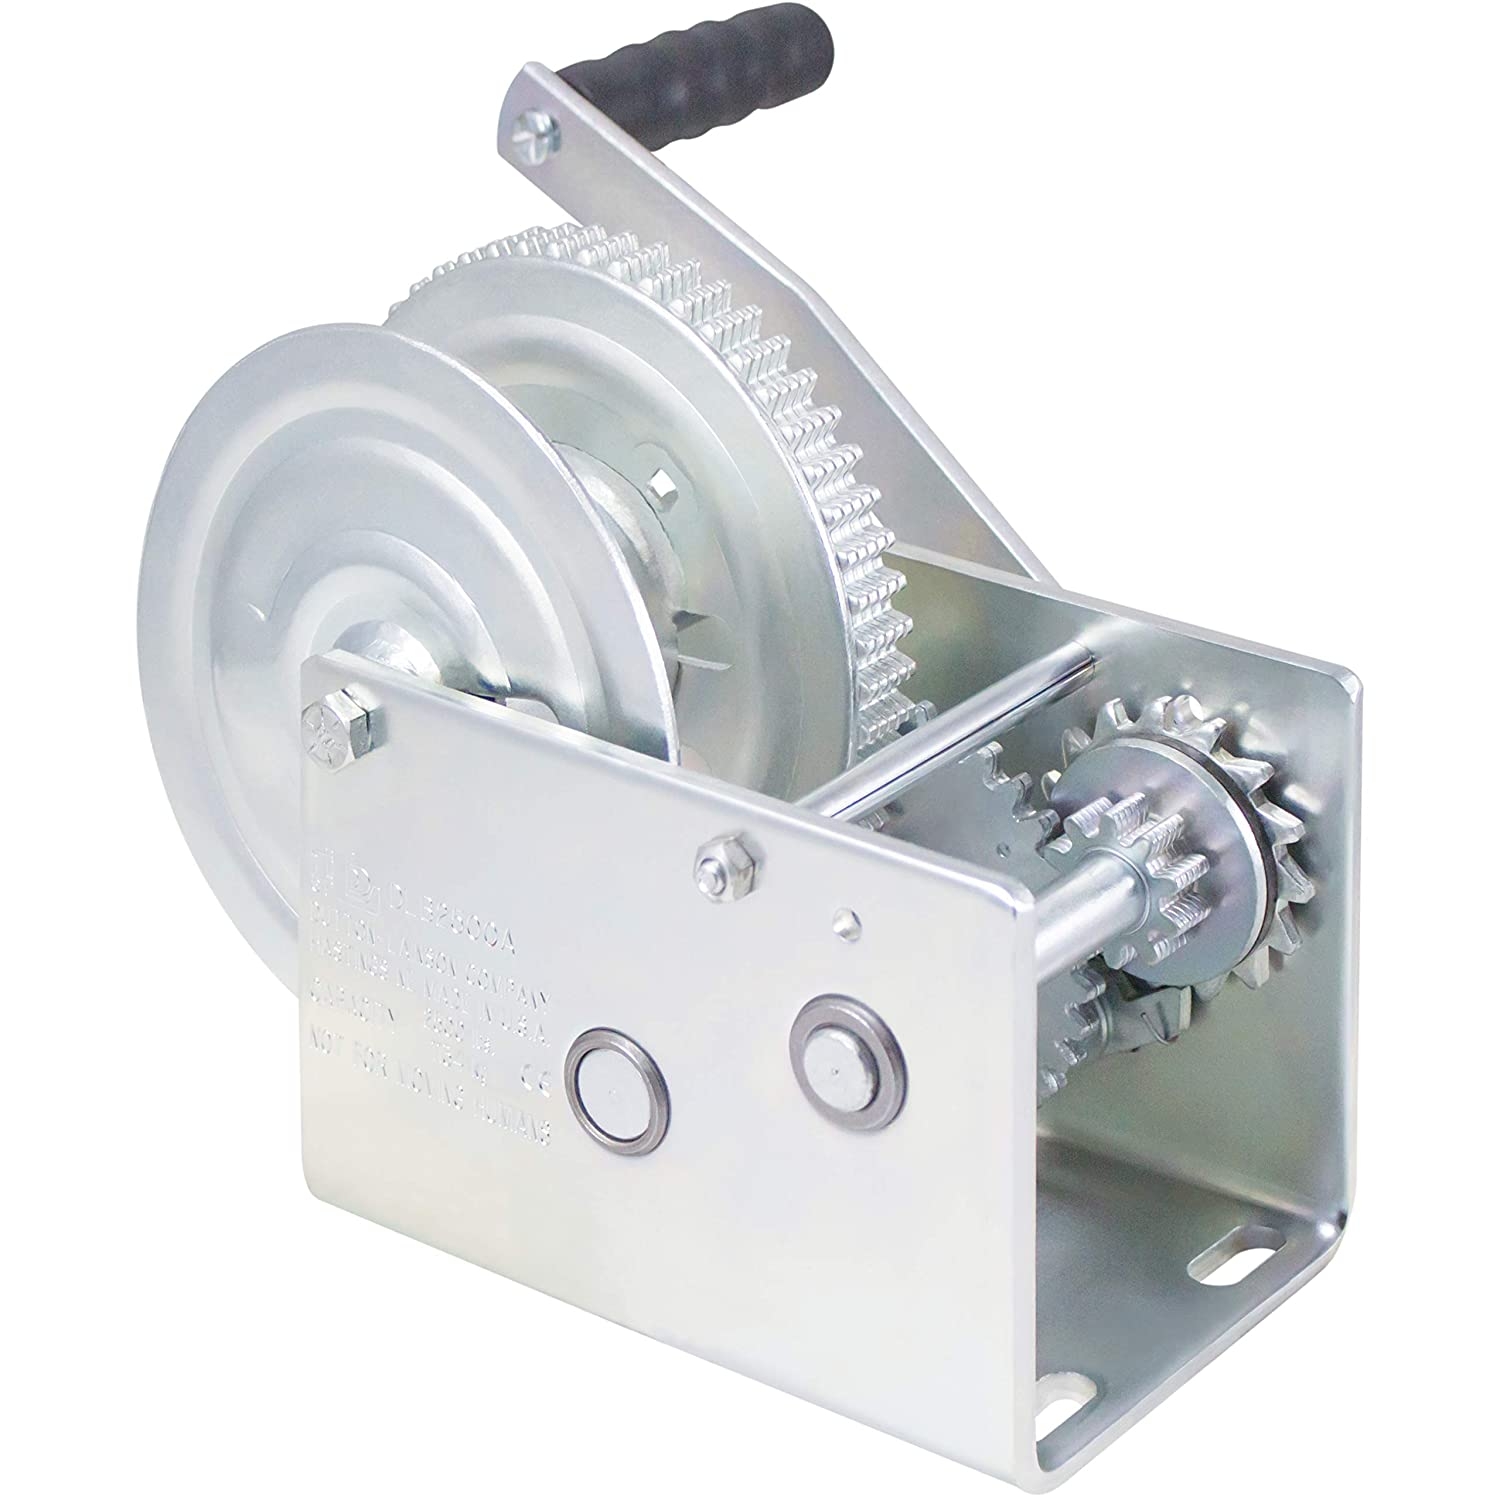 Dutton-Lainson DLB2500A Brake Winch 2500 lb